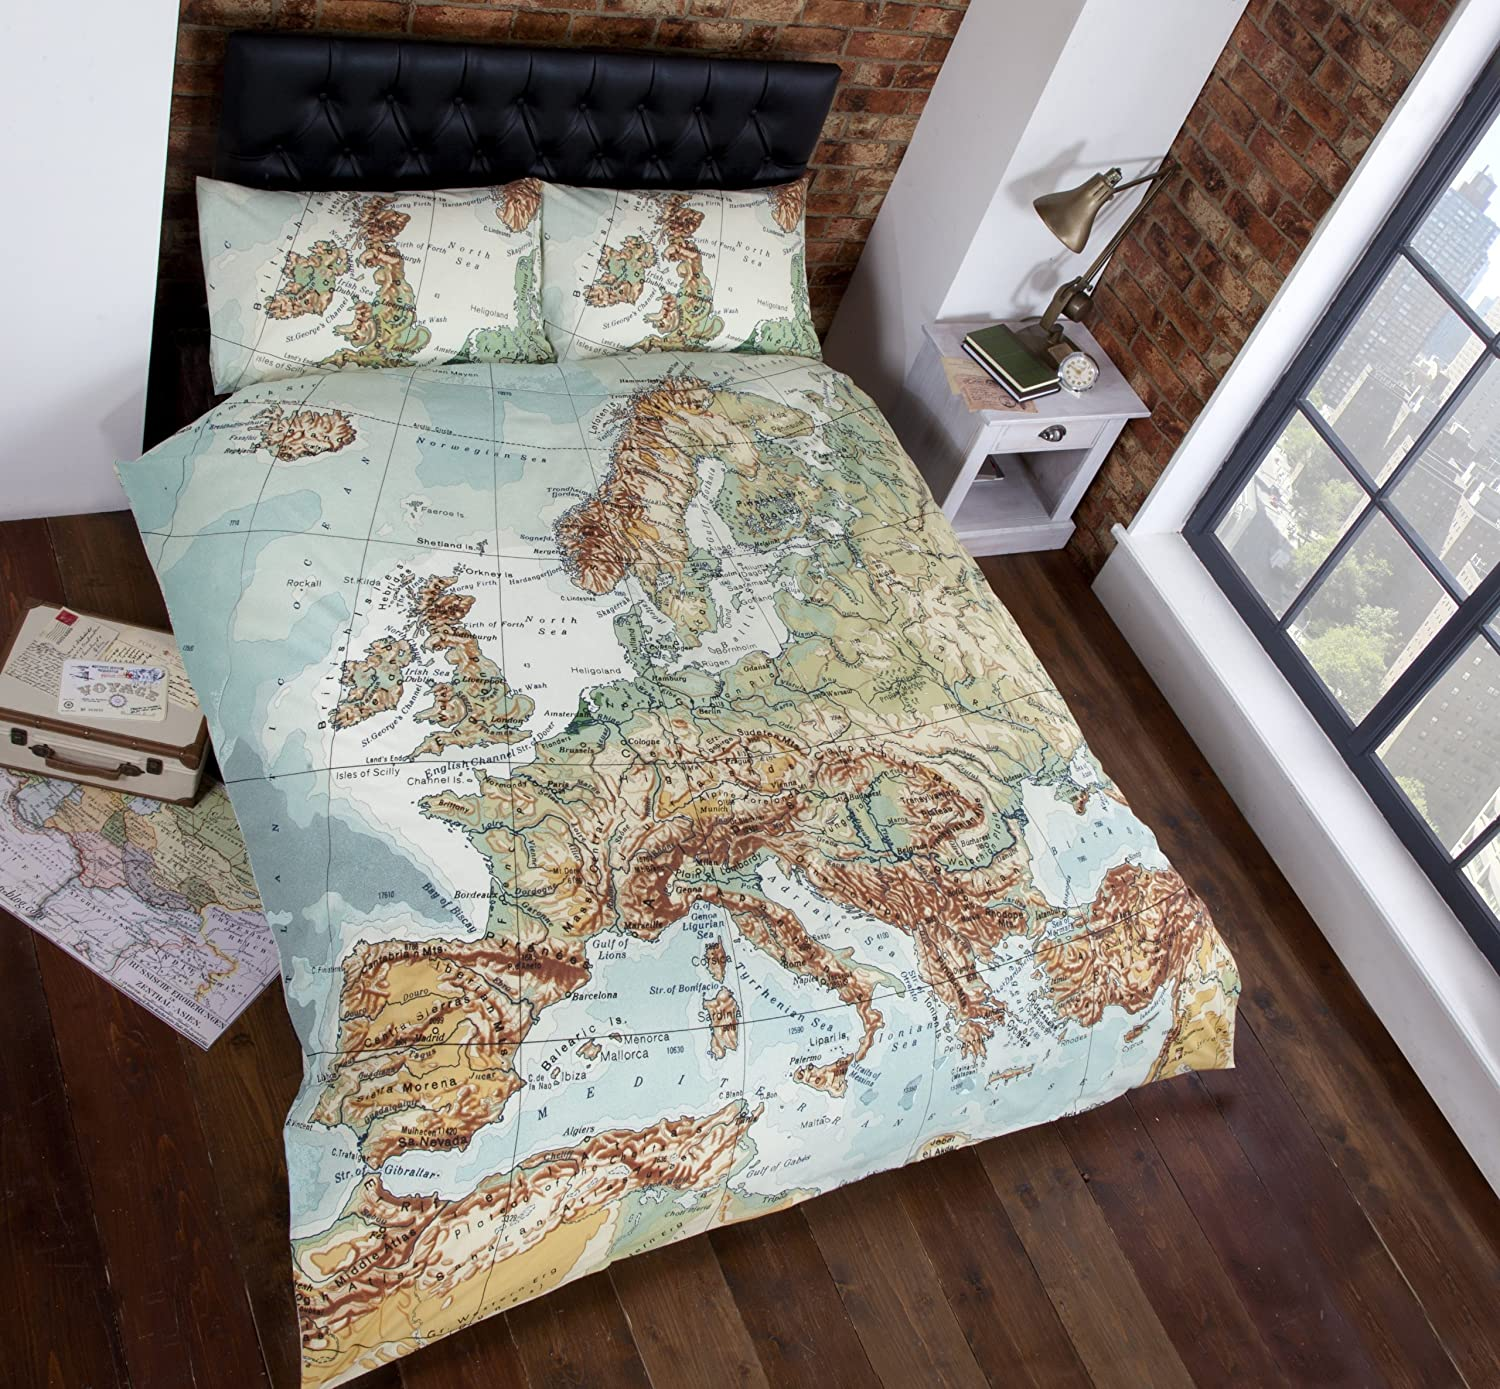 Vintage Maps Panel Duvet Cover Quilt Bedding Set, Double (World Map in  Blue, Green, Brown, White)